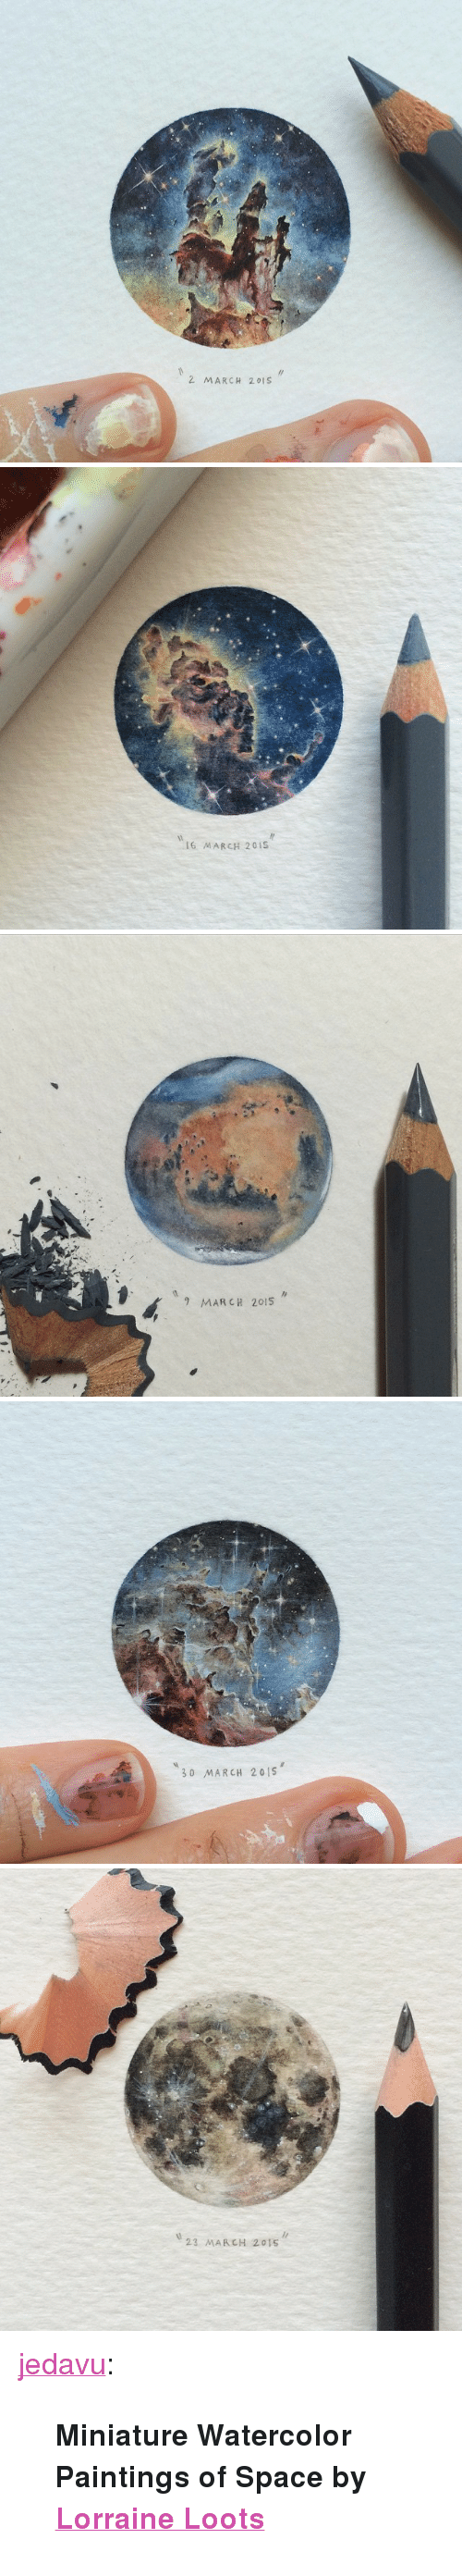 """23 March: 2 MARCH 201S   I6 MARCH 201S   9 MARCH 2015   30 MARCH 201S   23 MARCH 2015 <p><a href=""""http://jedavu.tumblr.com/post/115335369656/miniature-watercolor-paintings-of-space-by"""" class=""""tumblr_blog"""">jedavu</a>:</p>  <blockquote><p><b>Miniature Watercolor Paintings of Space by <a href=""""http://paintingsforants.com/"""">Lorraine Loots</a></b></p></blockquote>"""